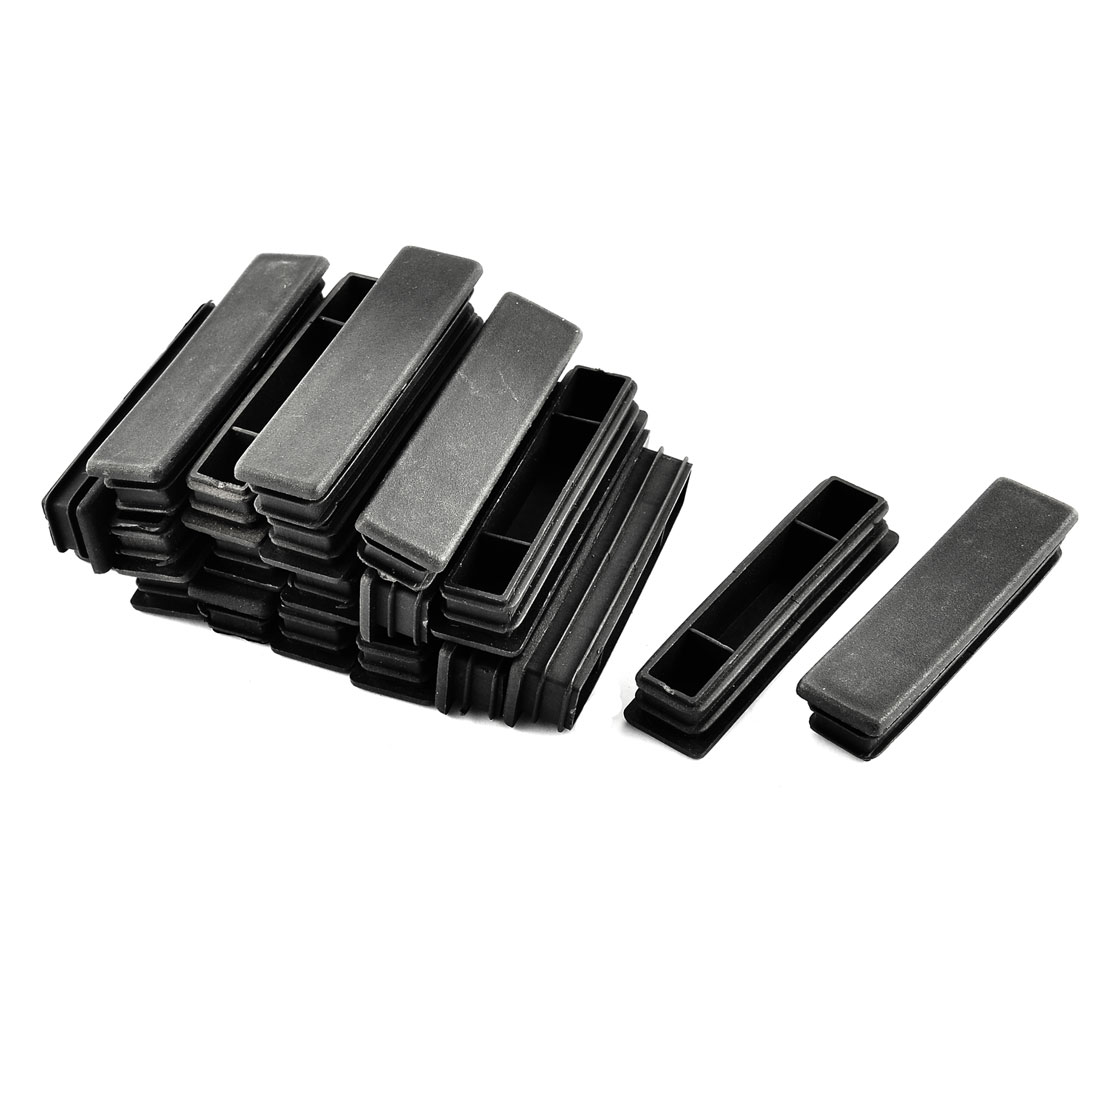 Home Plastic Rectangle Tube Inserts End Blanking Cap Black 20mm x 80mm 20 Pcs